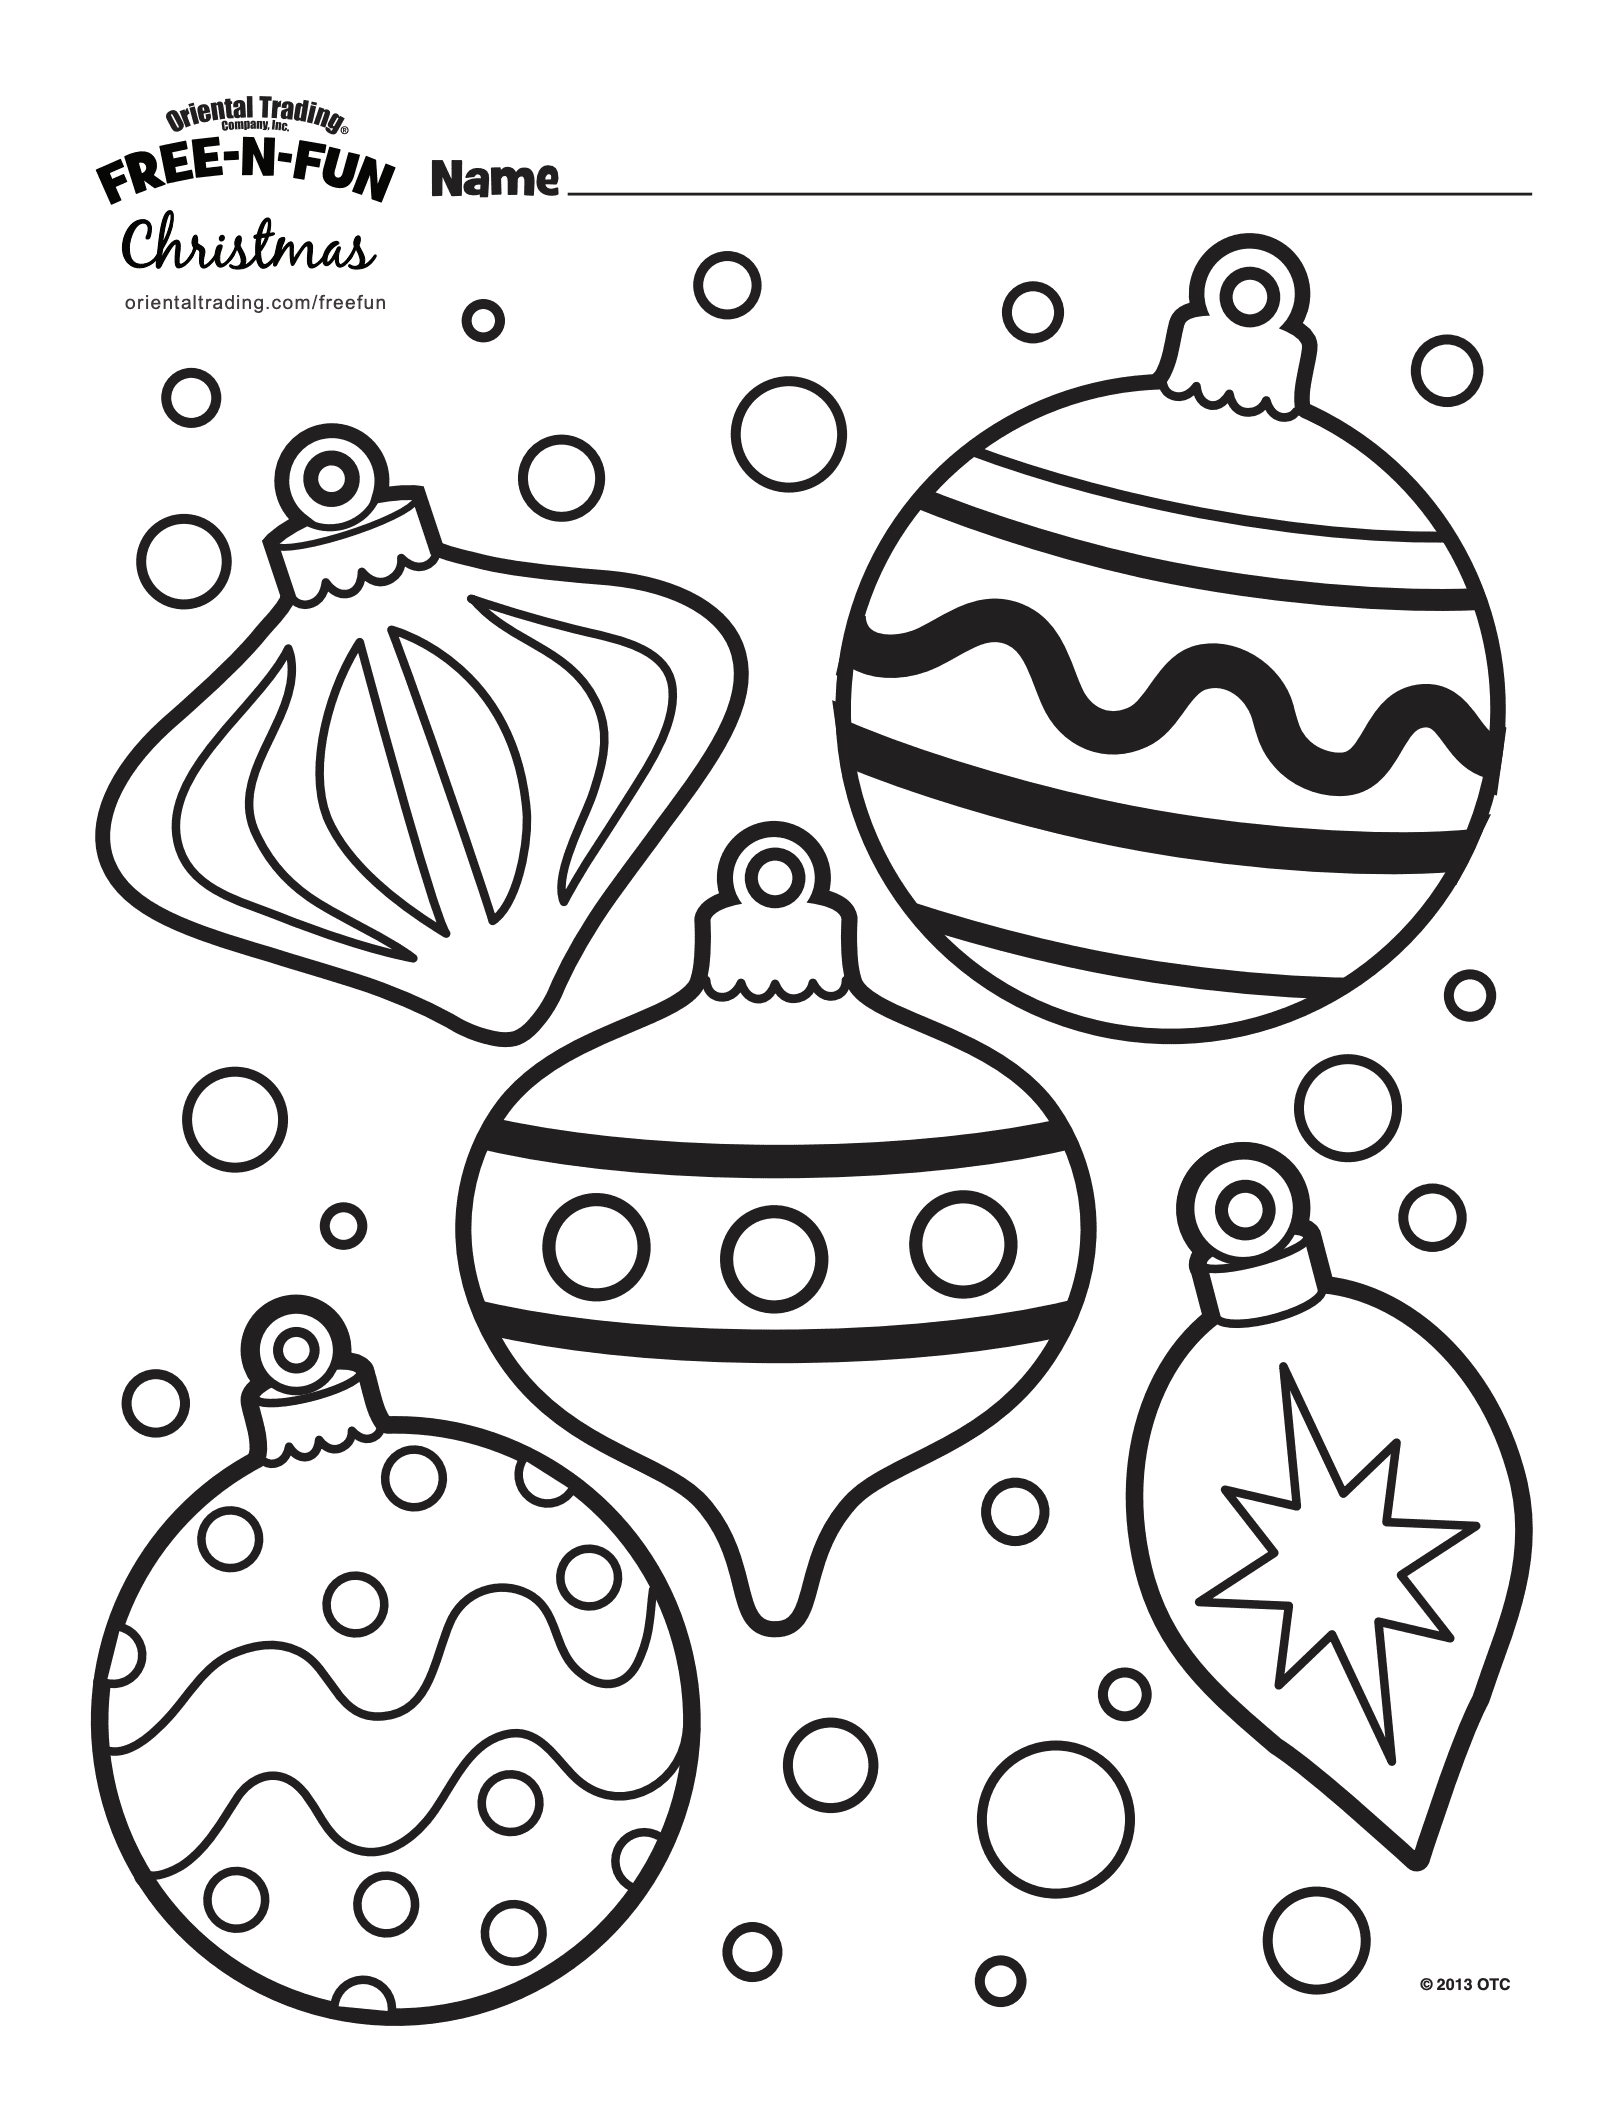 Printable Christmas Colouring Pages The Organised Housewife Printable Christmas Coloring Pages Free Christmas Coloring Pages Christmas Ornament Coloring Page